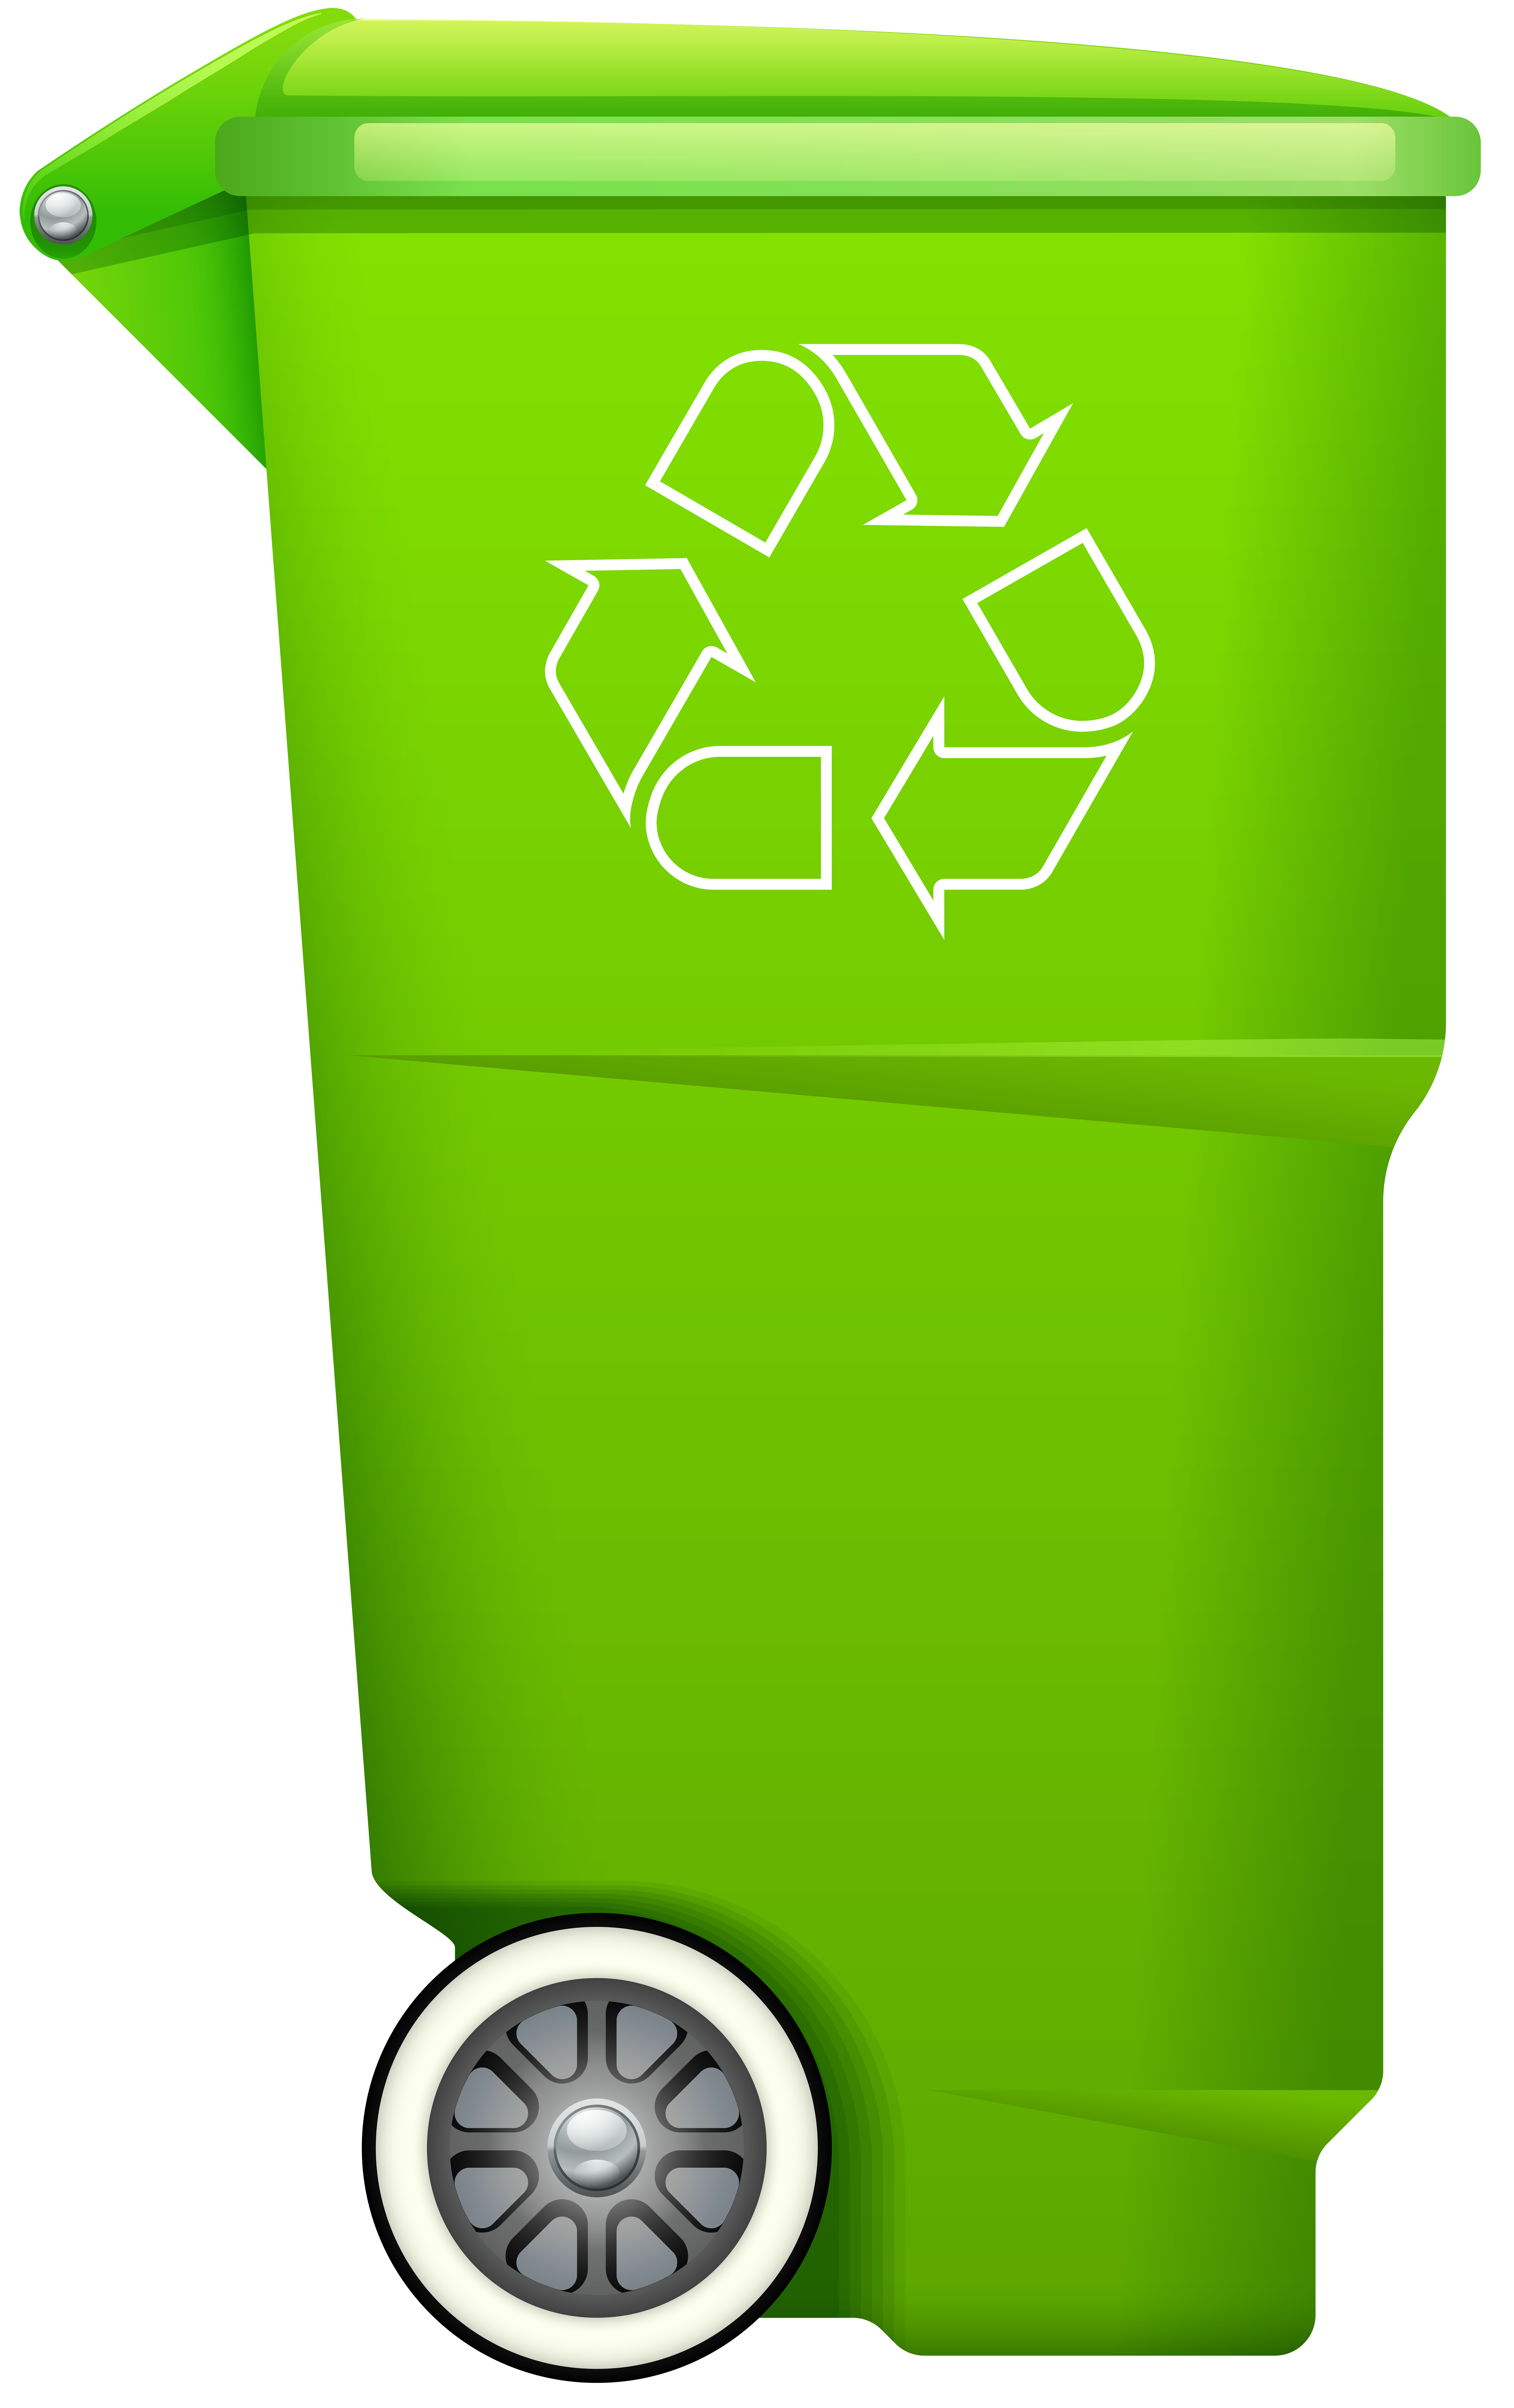 Trashcans clipart free download Garbage Trash Bin with Recycle Symbol PNG Clip Art - Best ... free download